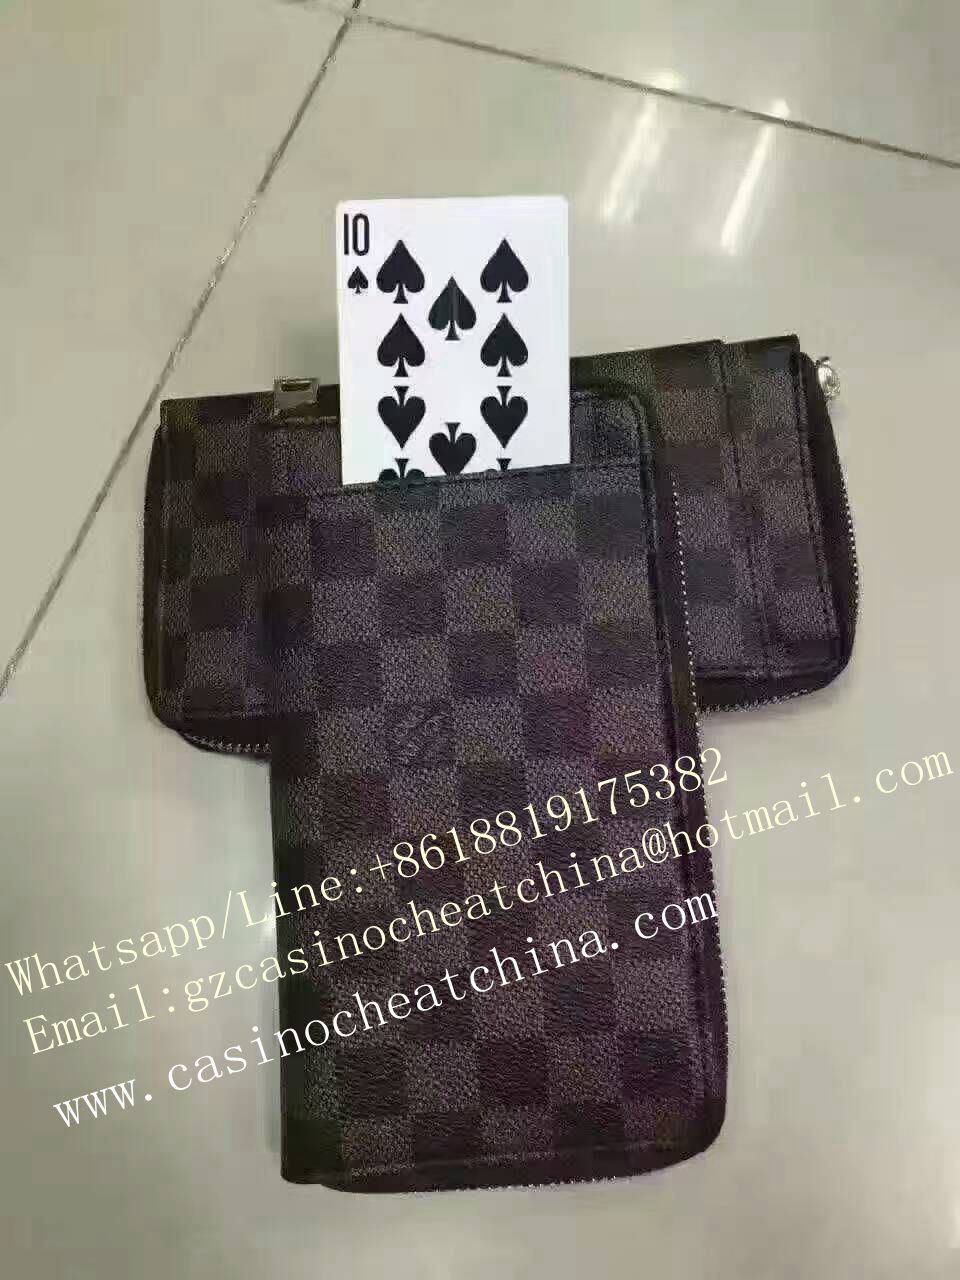 Poker exchange bag for poker cheat/cards cheat/magic trick/gamble cheating device/exchange poker/casino cheat